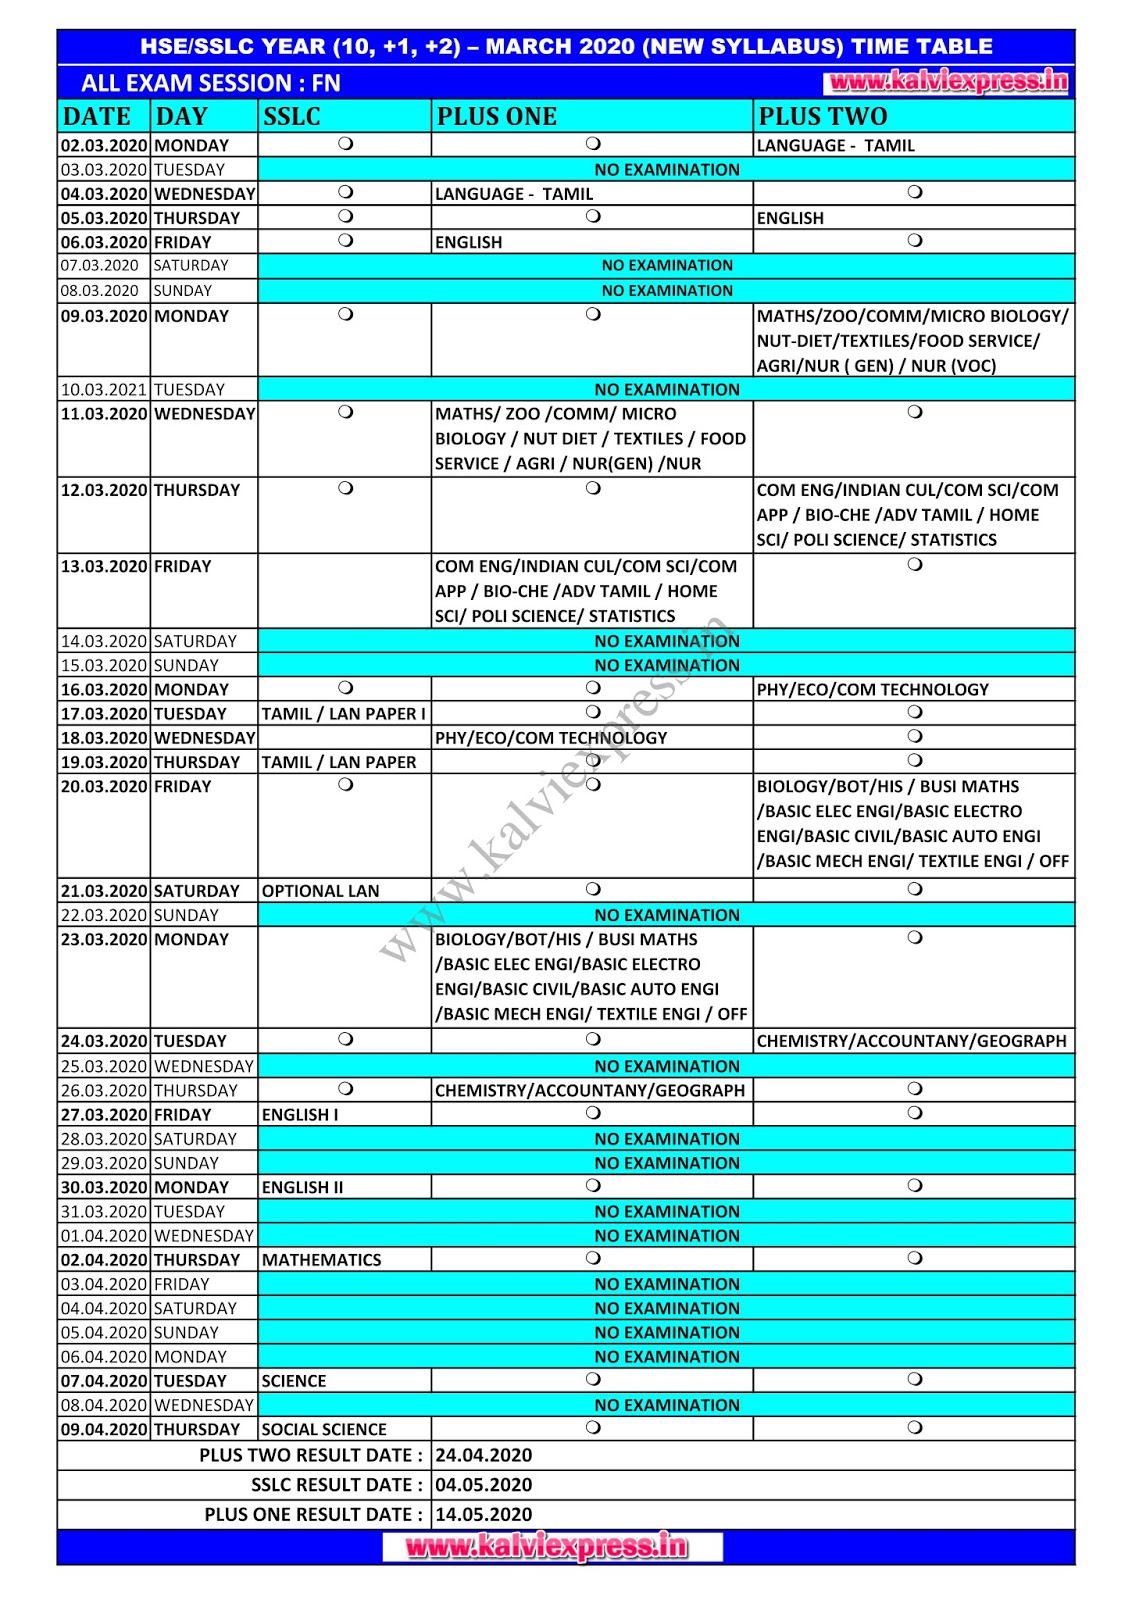 DGE TIME TABLE MARCH 2020 - SSLC - PLUS ONE - PLUS TWO PUBLIC EXAM TIME TABLE SINGLE PAGE.